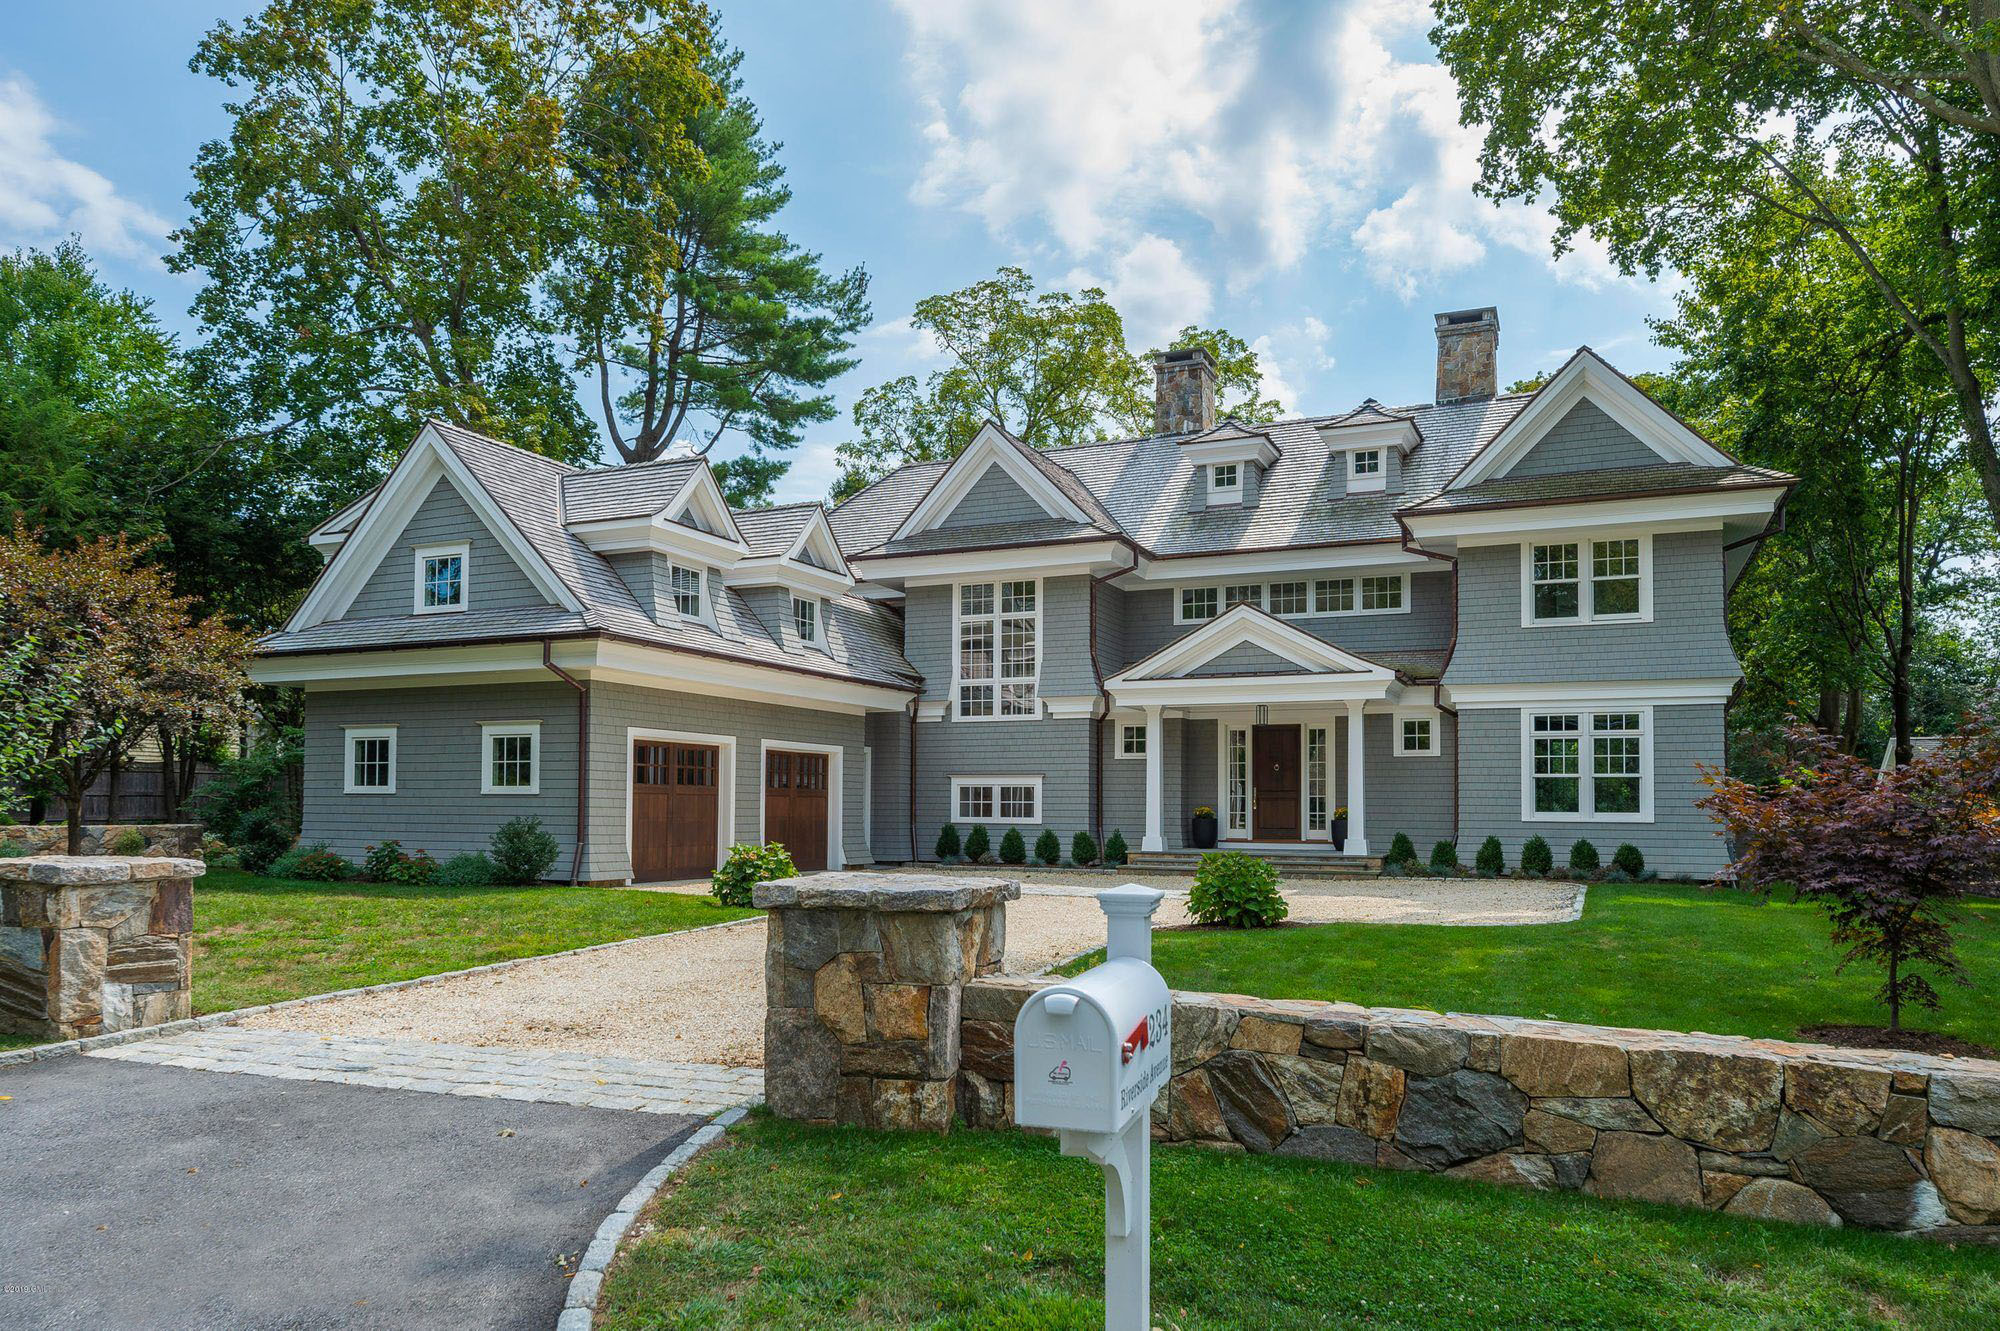 gray house color scheme with white trim and stained wood garage and front door. real stone veneer.